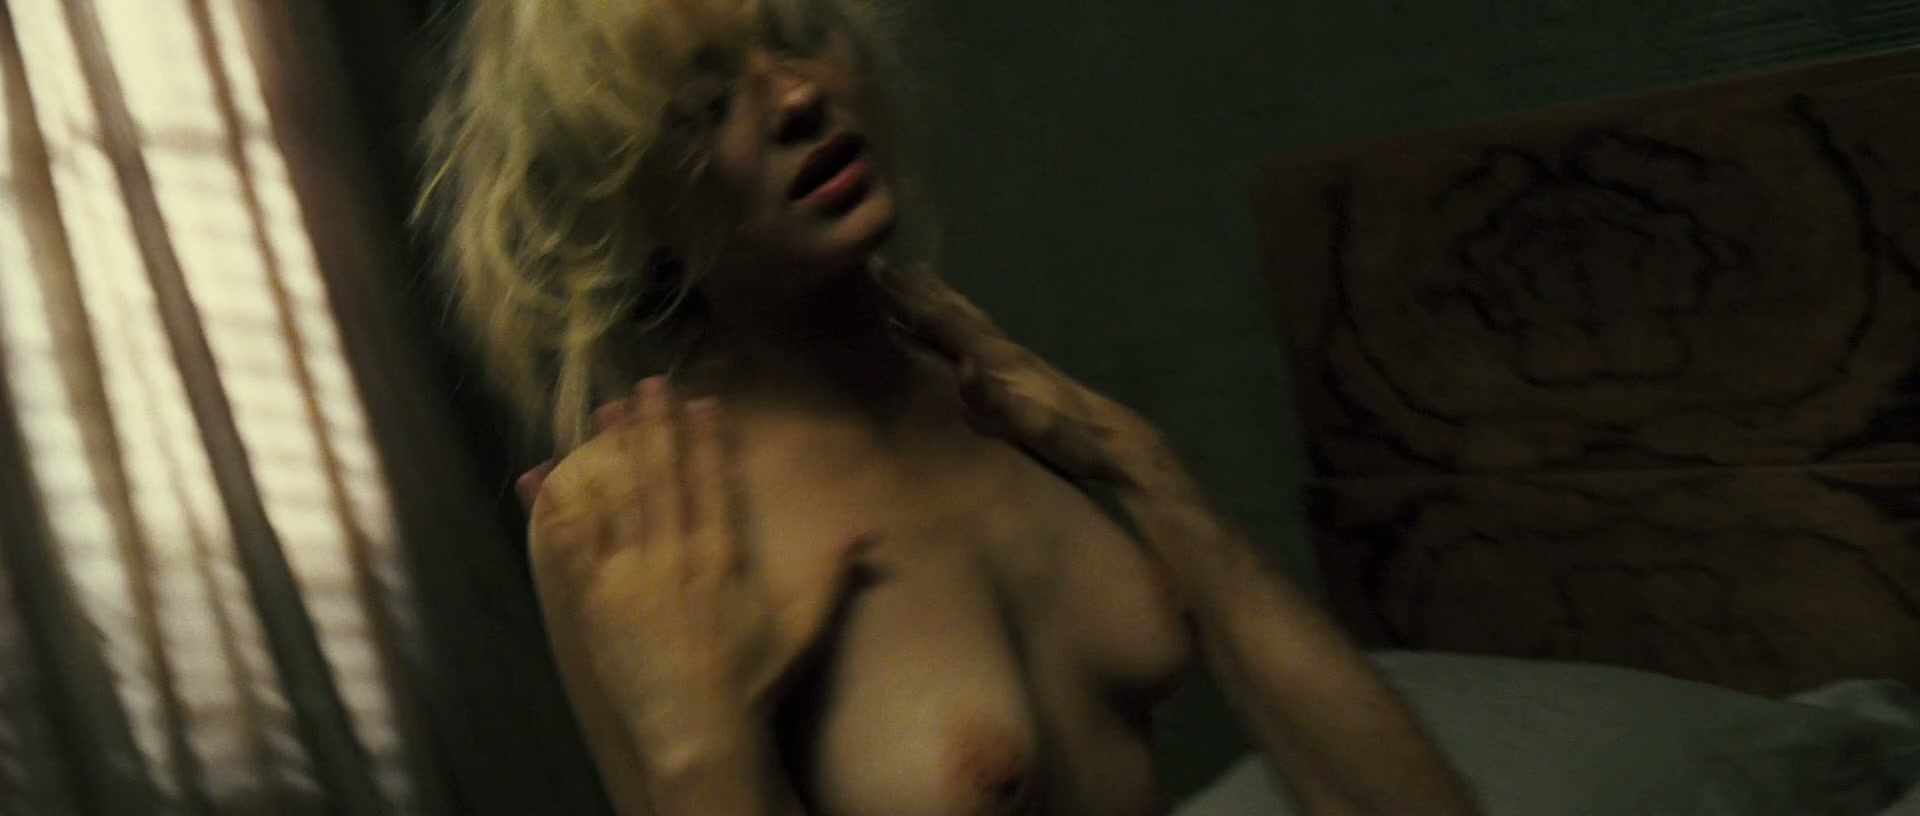 Marion Cotillard Sex Video